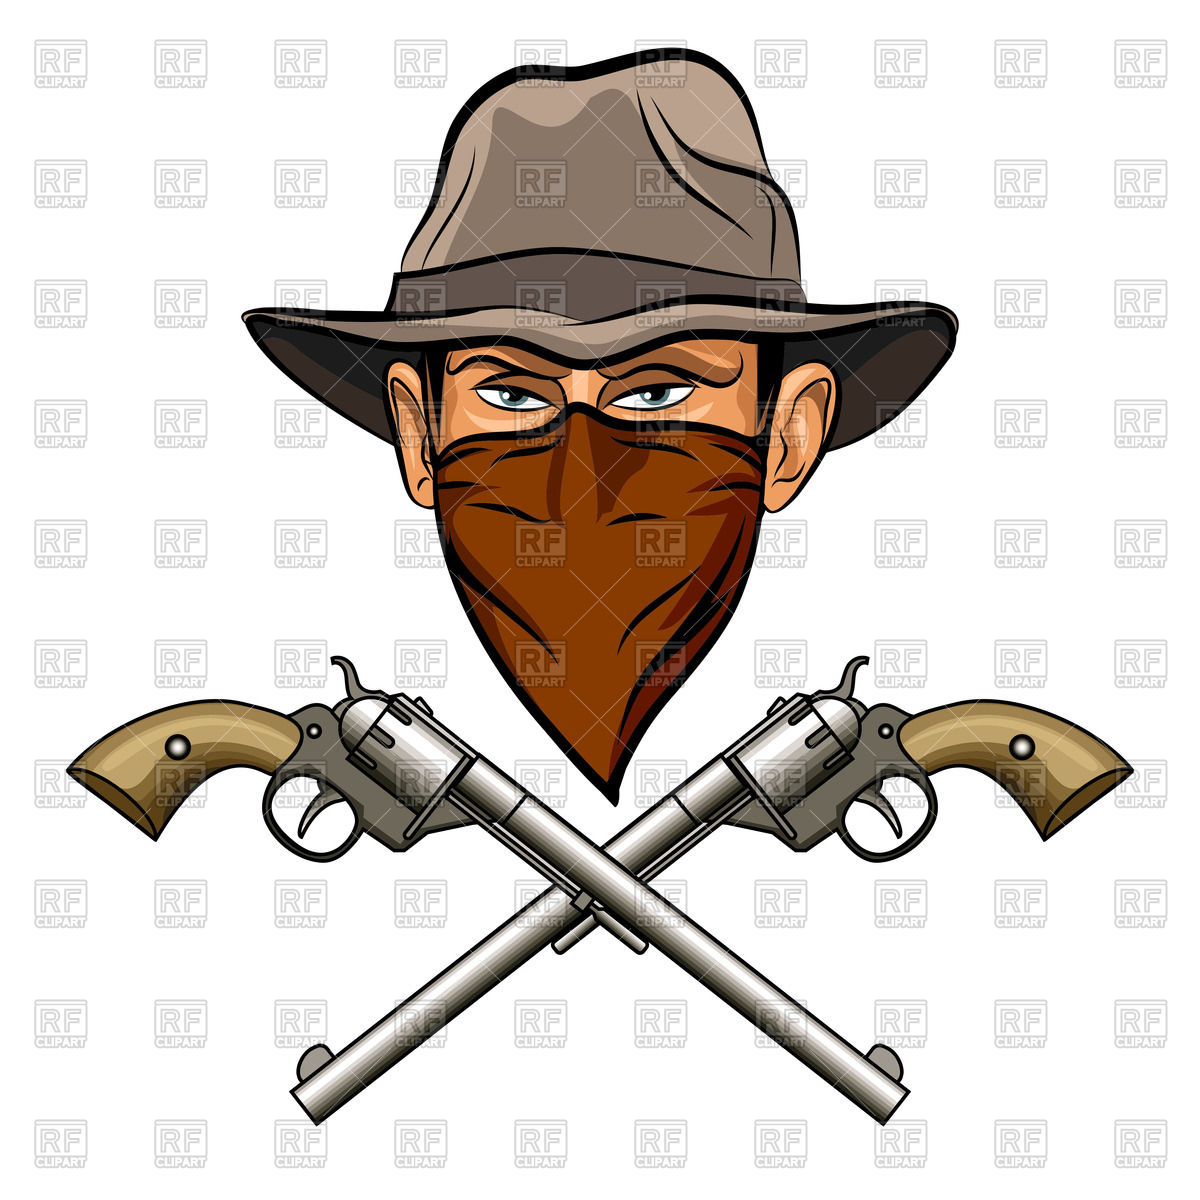 1200x1200 Bandit In Hat With Bandana On Face And Two Crossed Guns (Six